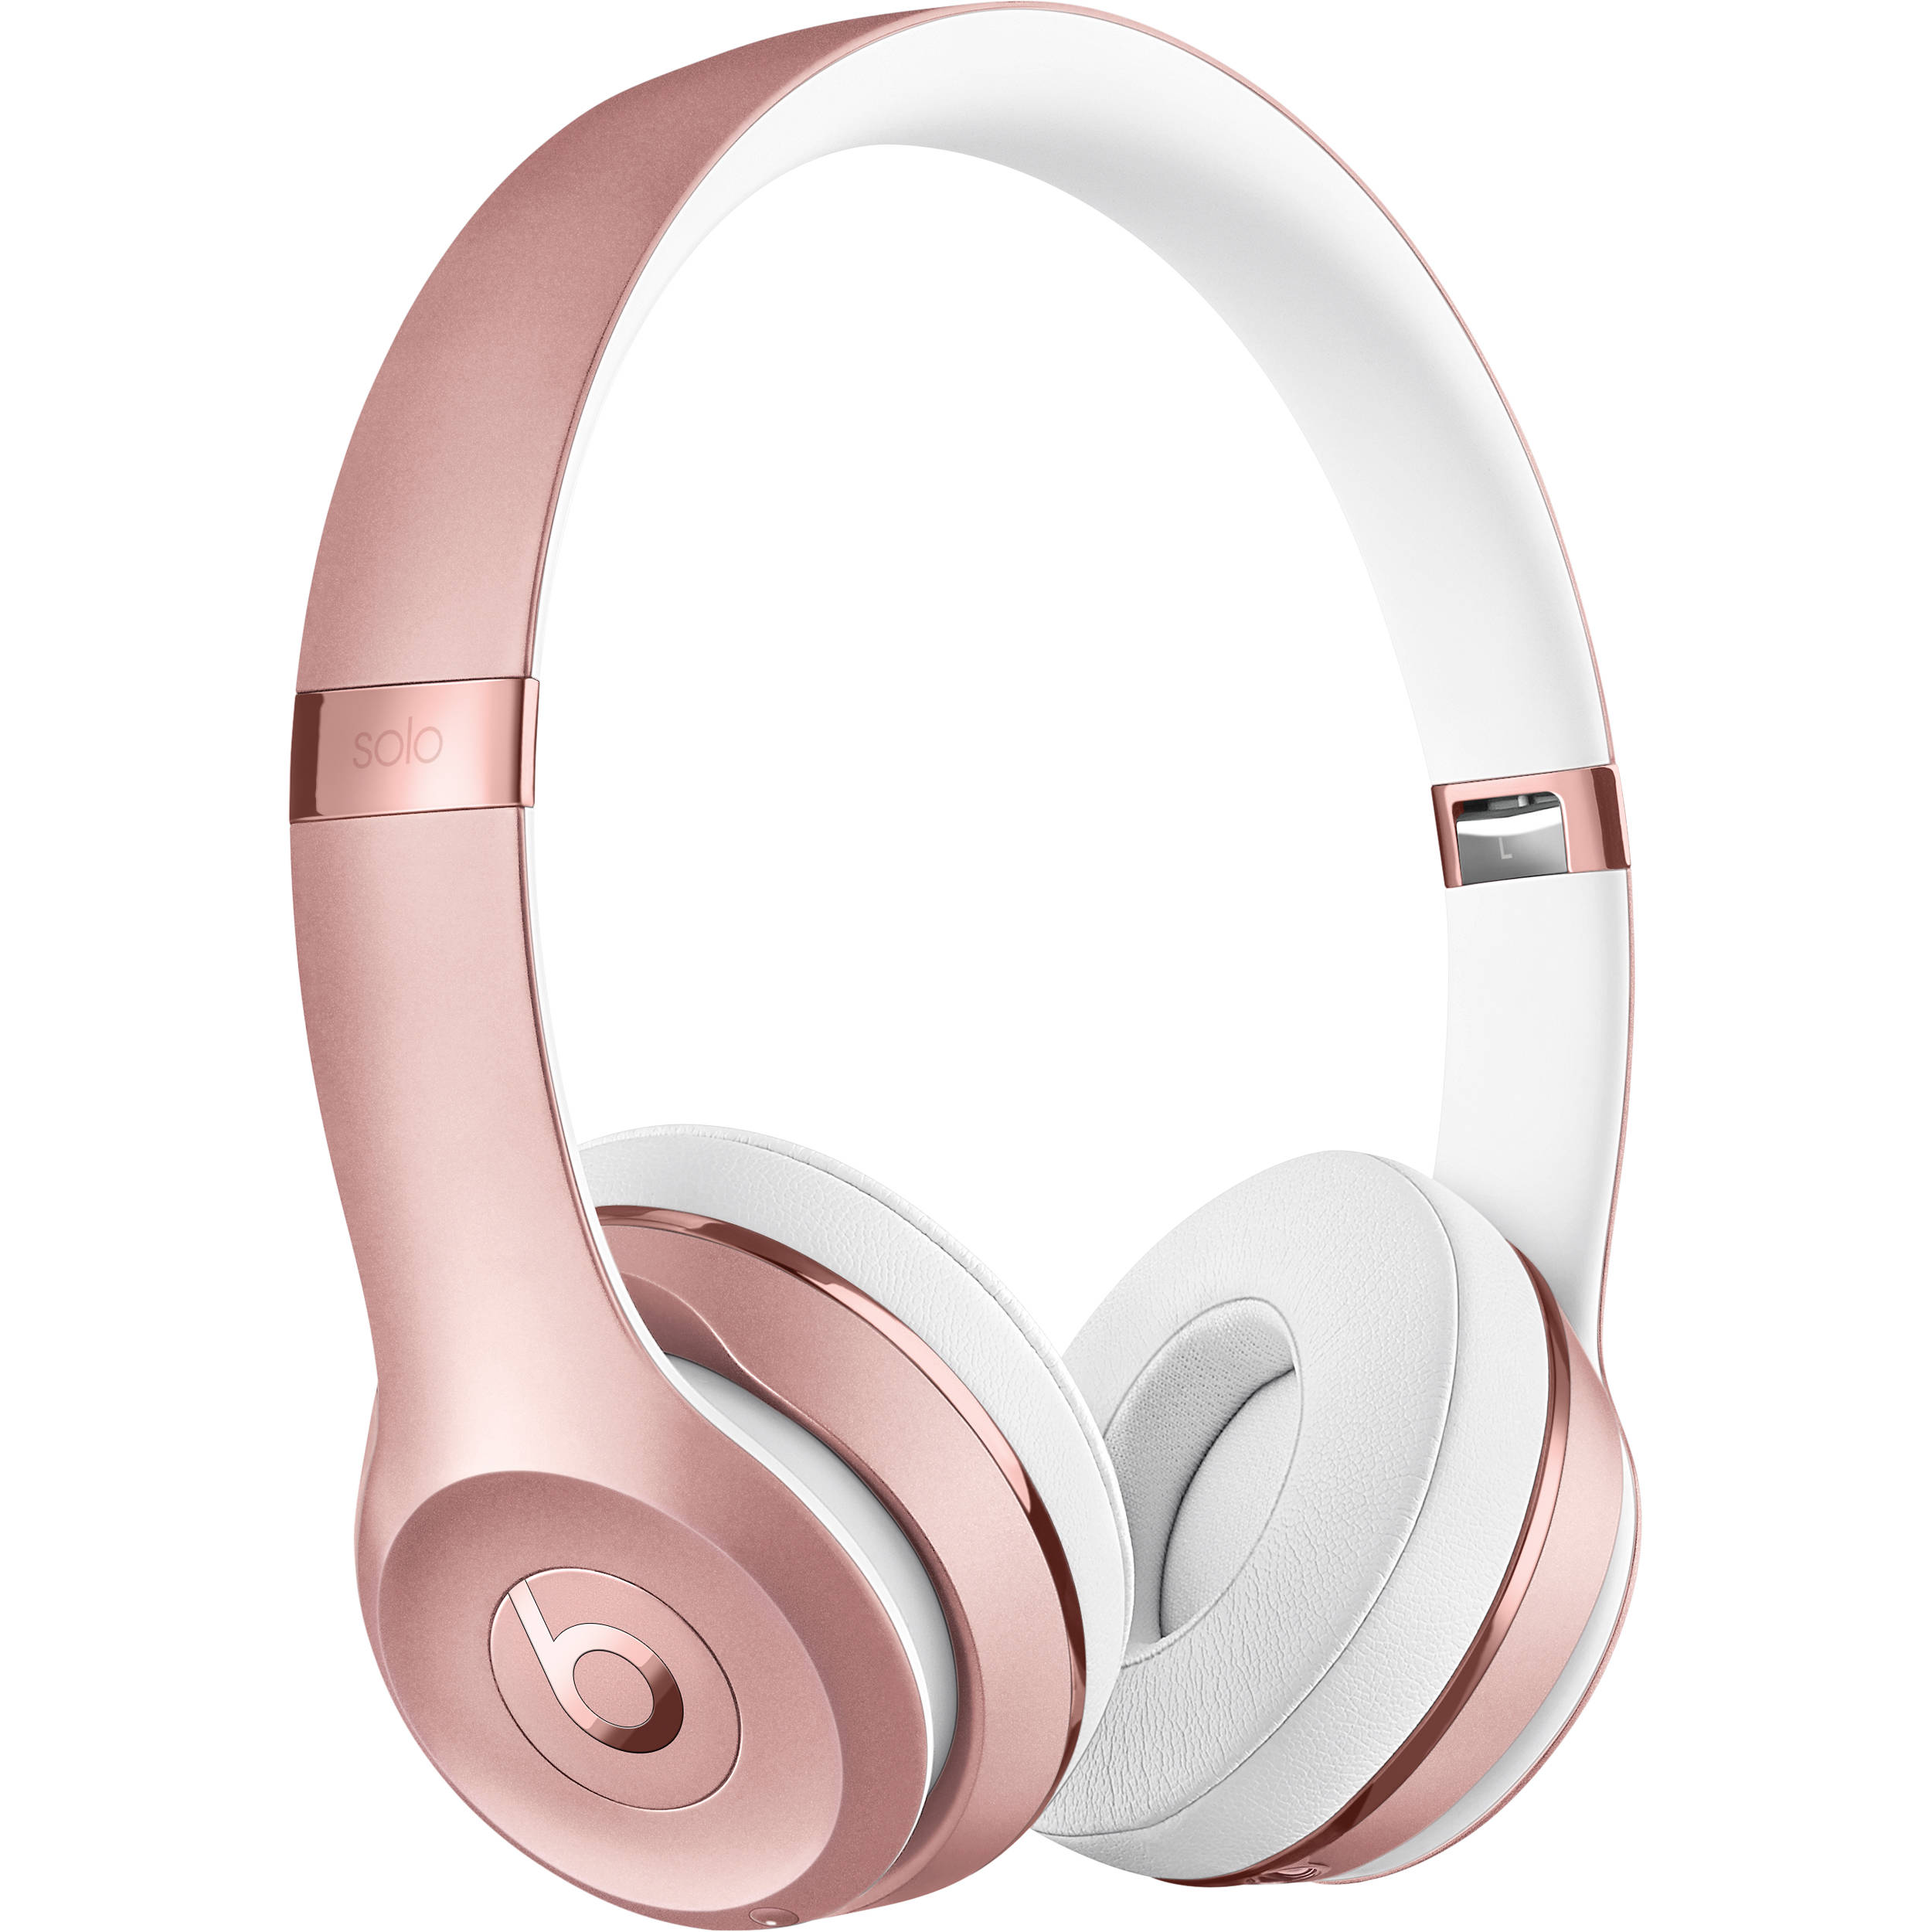 beats by dr dre beats solo3 wireless on ear headphones rose gold beats. Black Bedroom Furniture Sets. Home Design Ideas